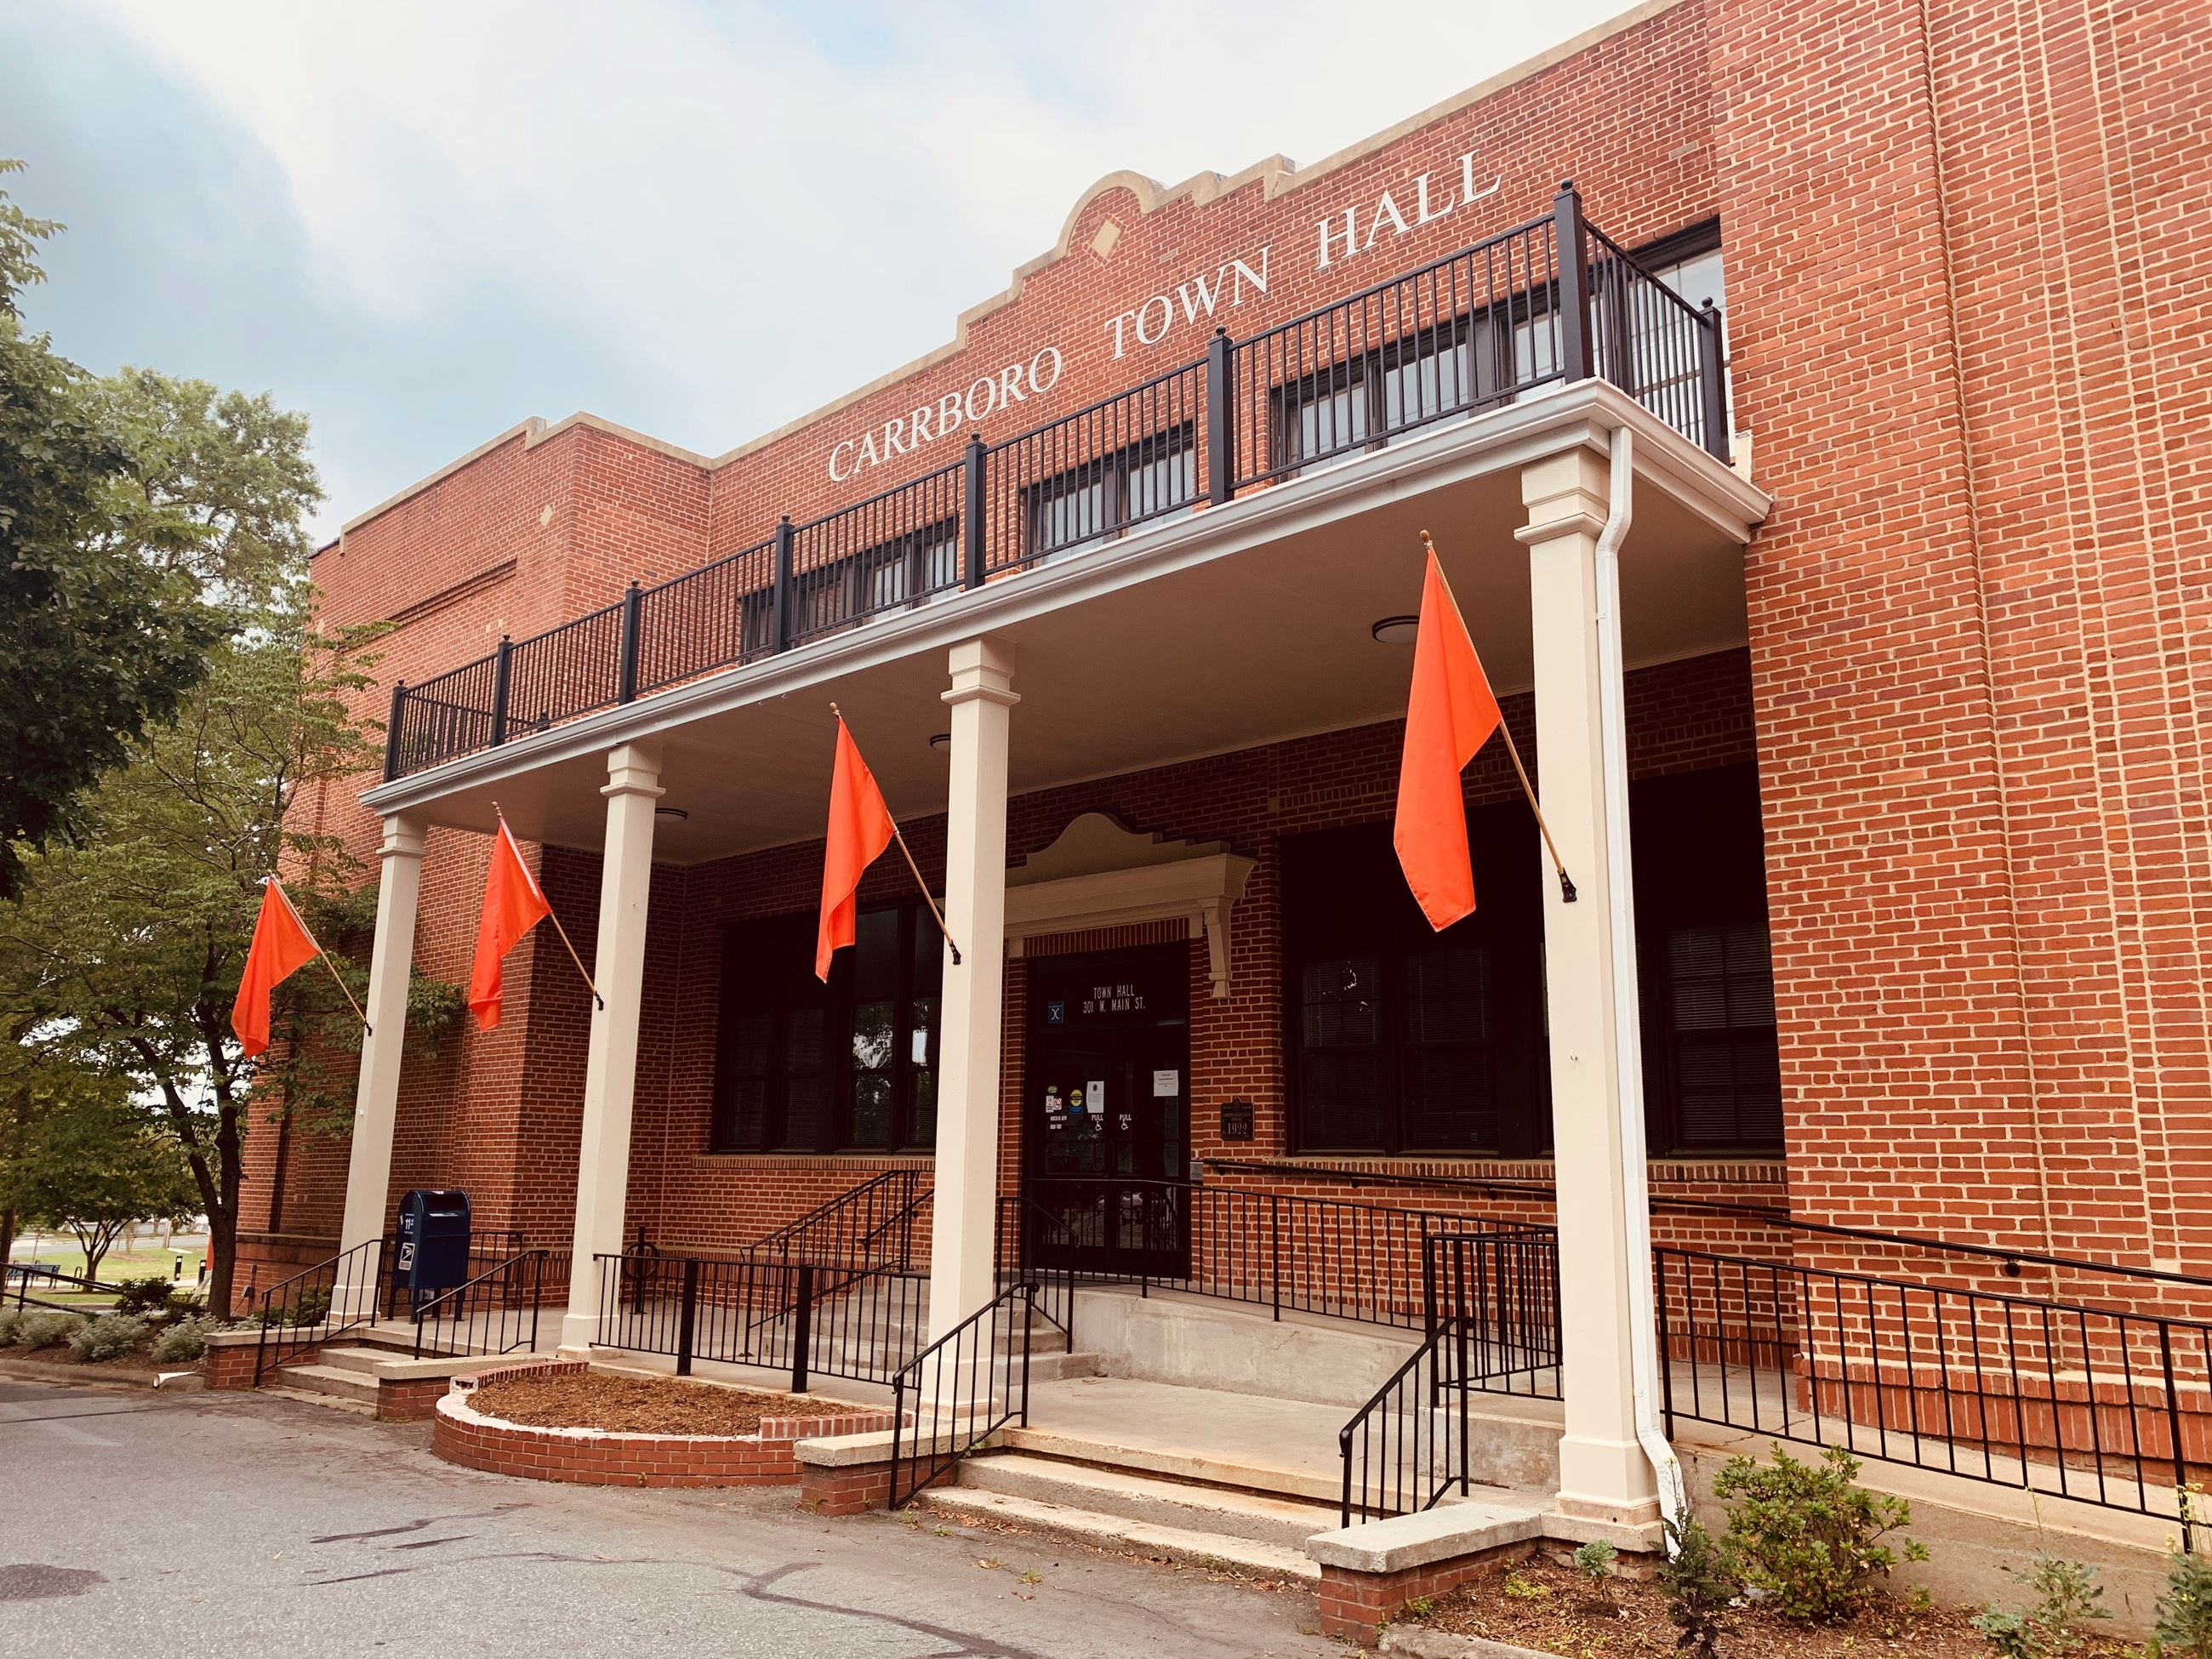 Orange flags at Carrboro Town Hall